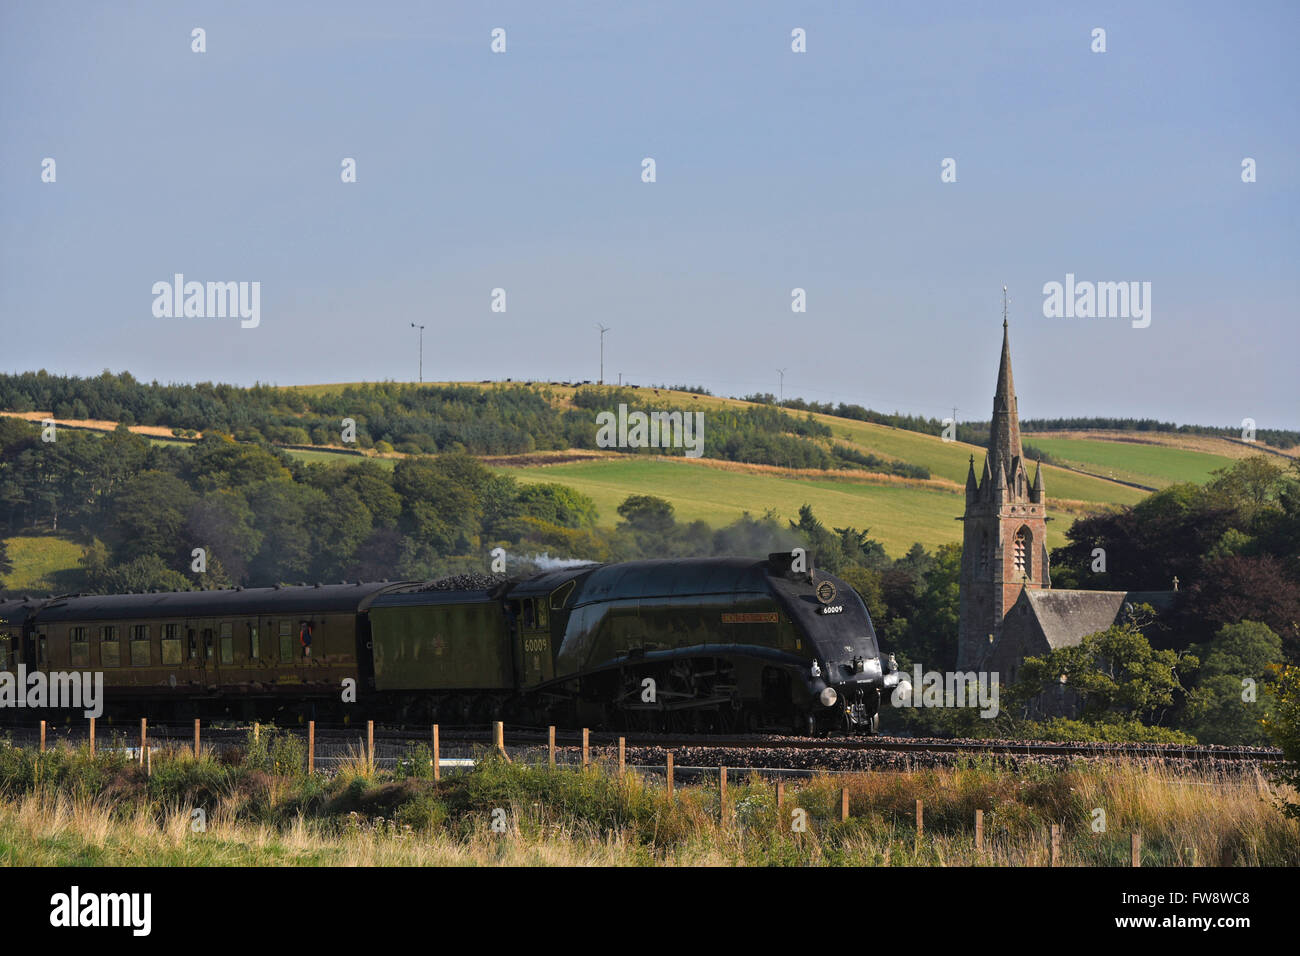 The Union of South Africa steam train passing through Stow in the Scottish Borders. - Stock Image